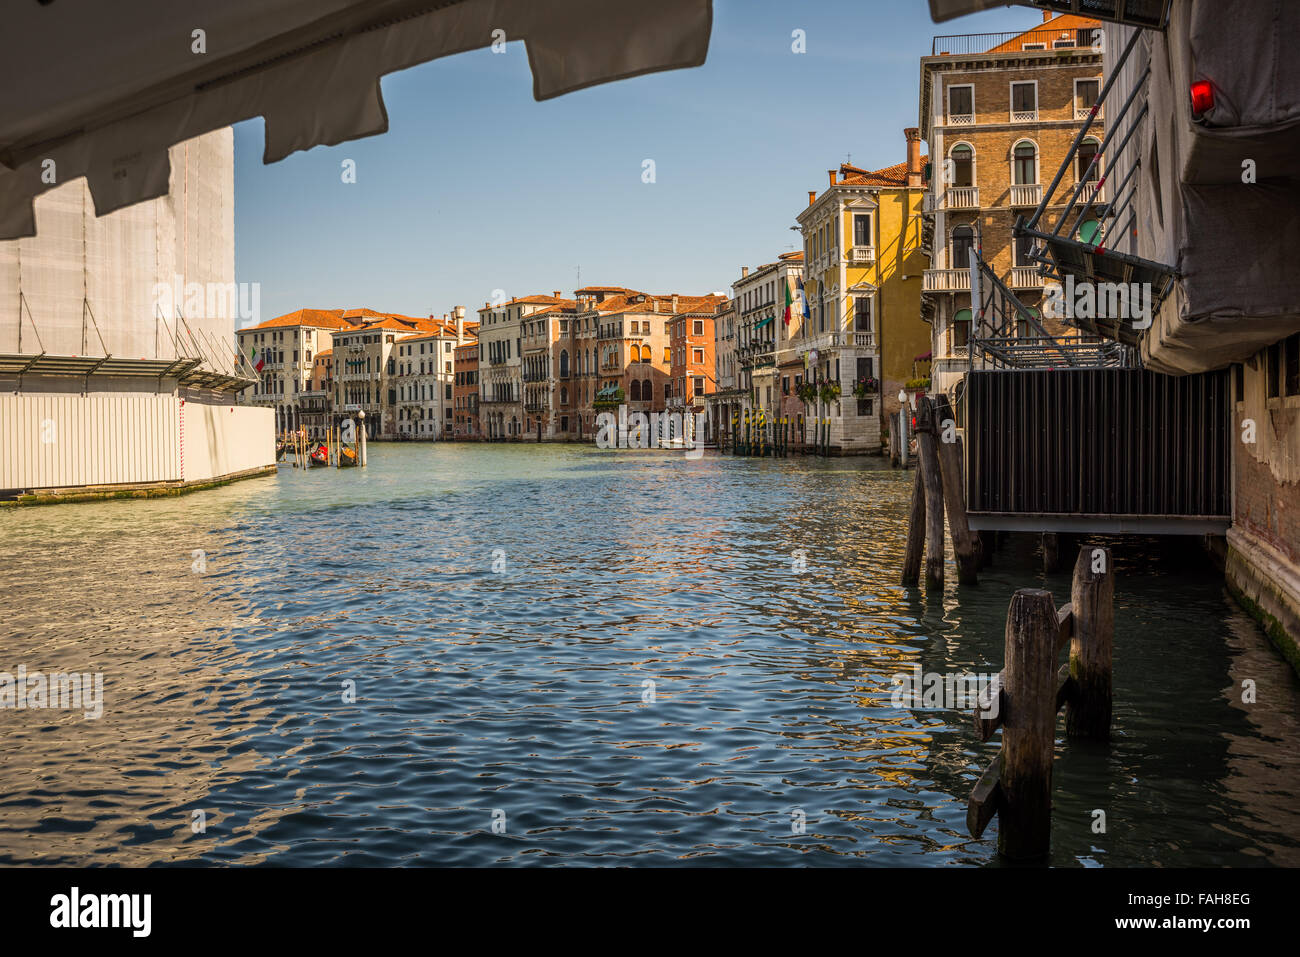 The Grand canal in the city of Venice Italy Stock Photo